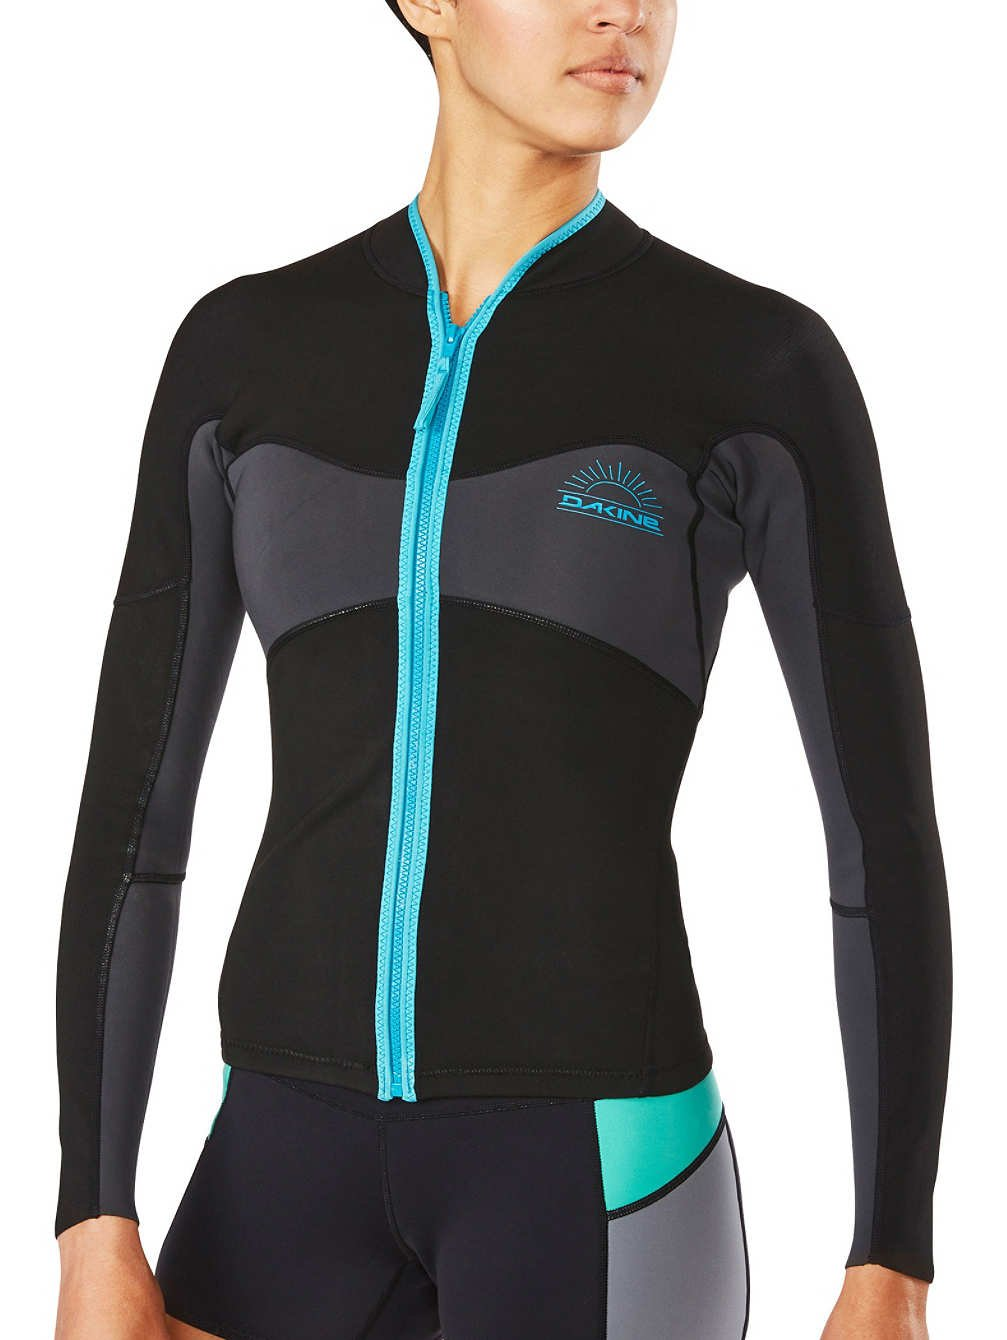 Dakine Women's 1mm Neo Jacket Long Sleeve (Medium) by Dakine